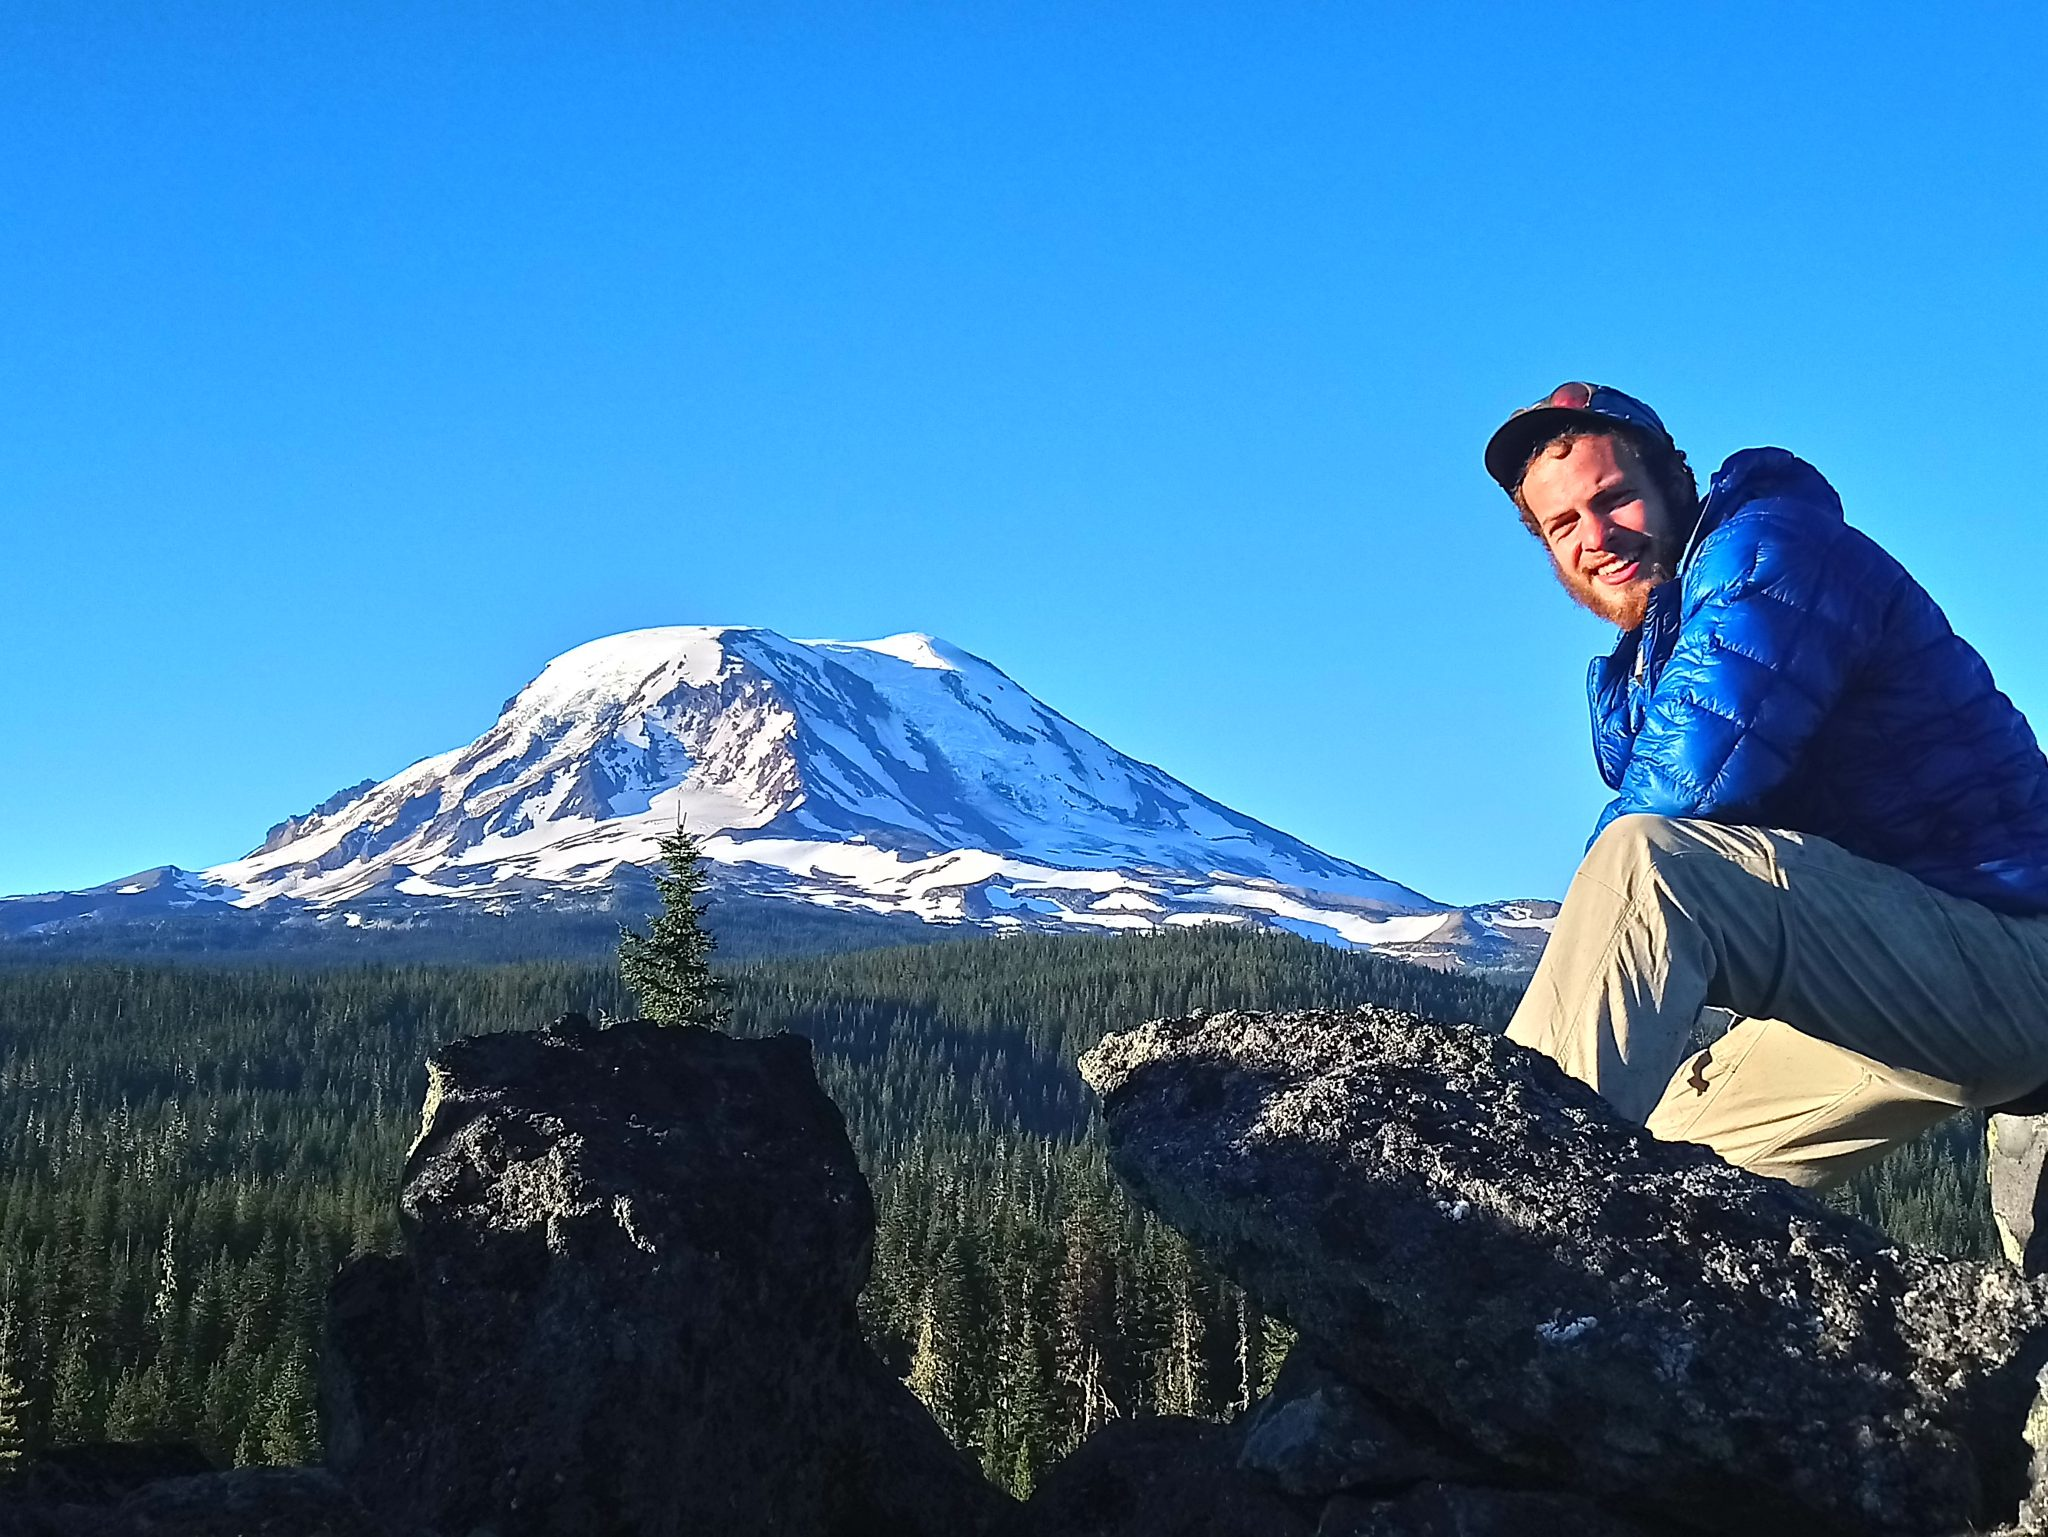 Mount Adams from the Pacific Crest Trail